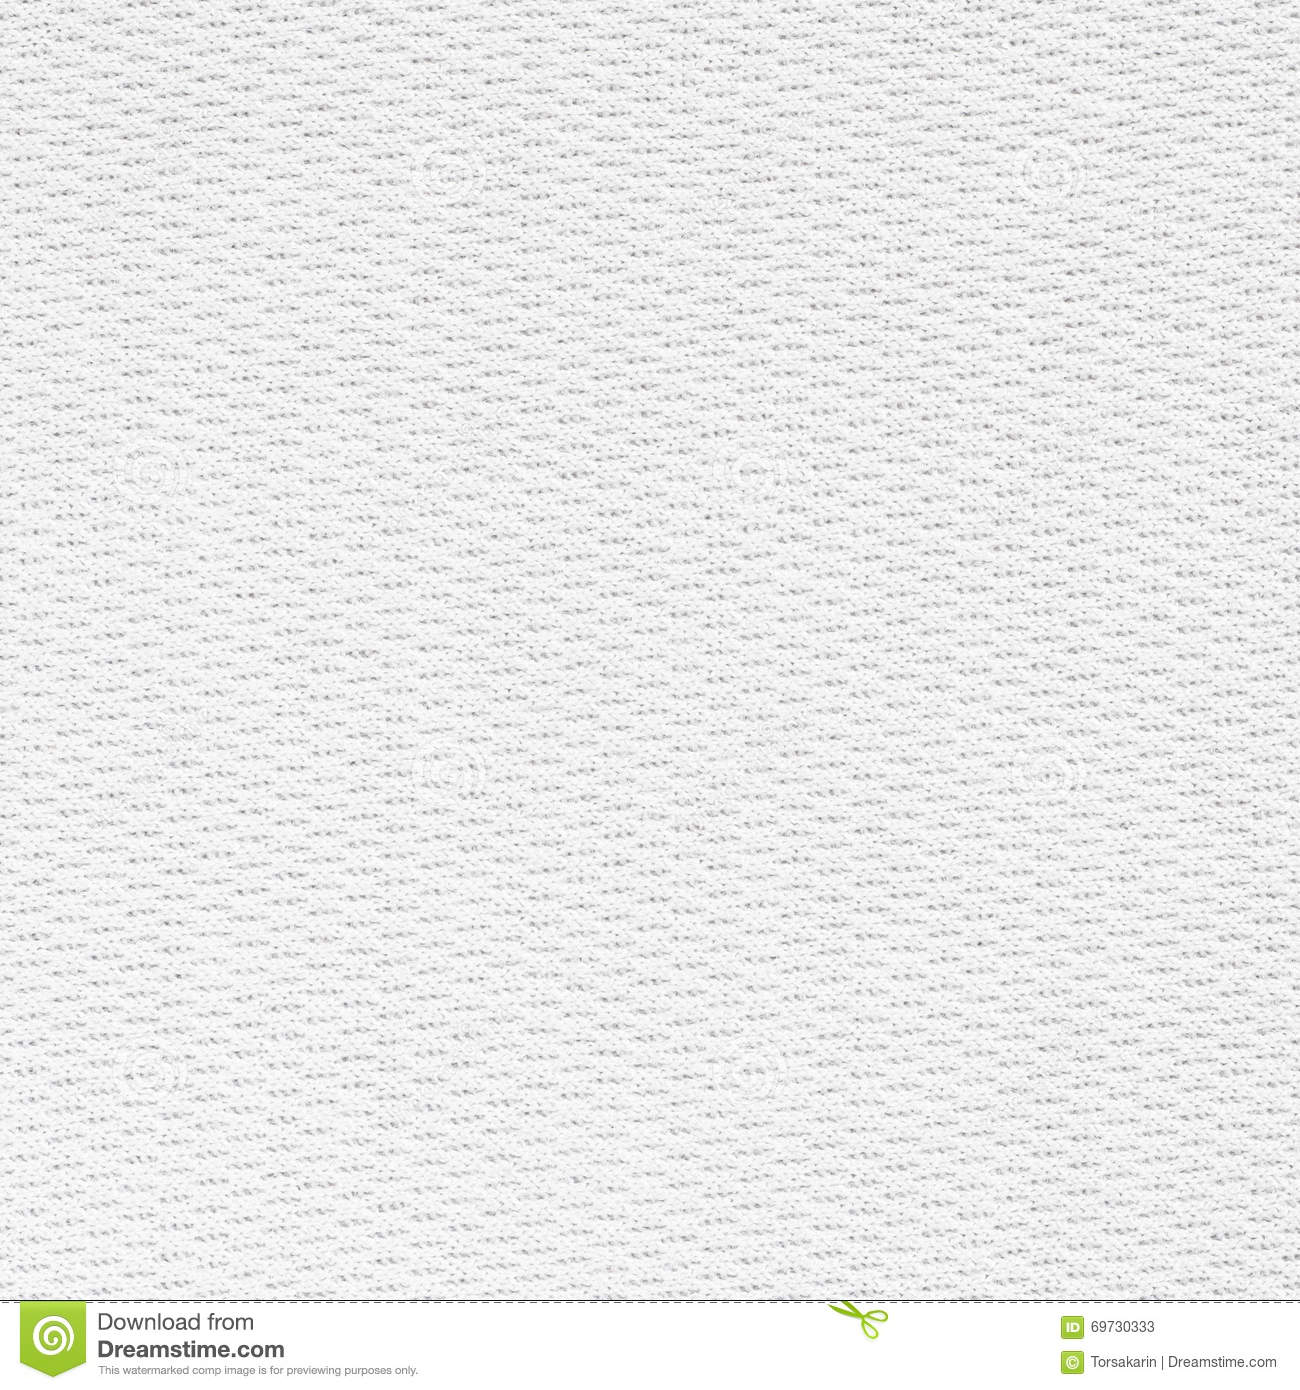 royaltyfree stock photo download white canvas fabric